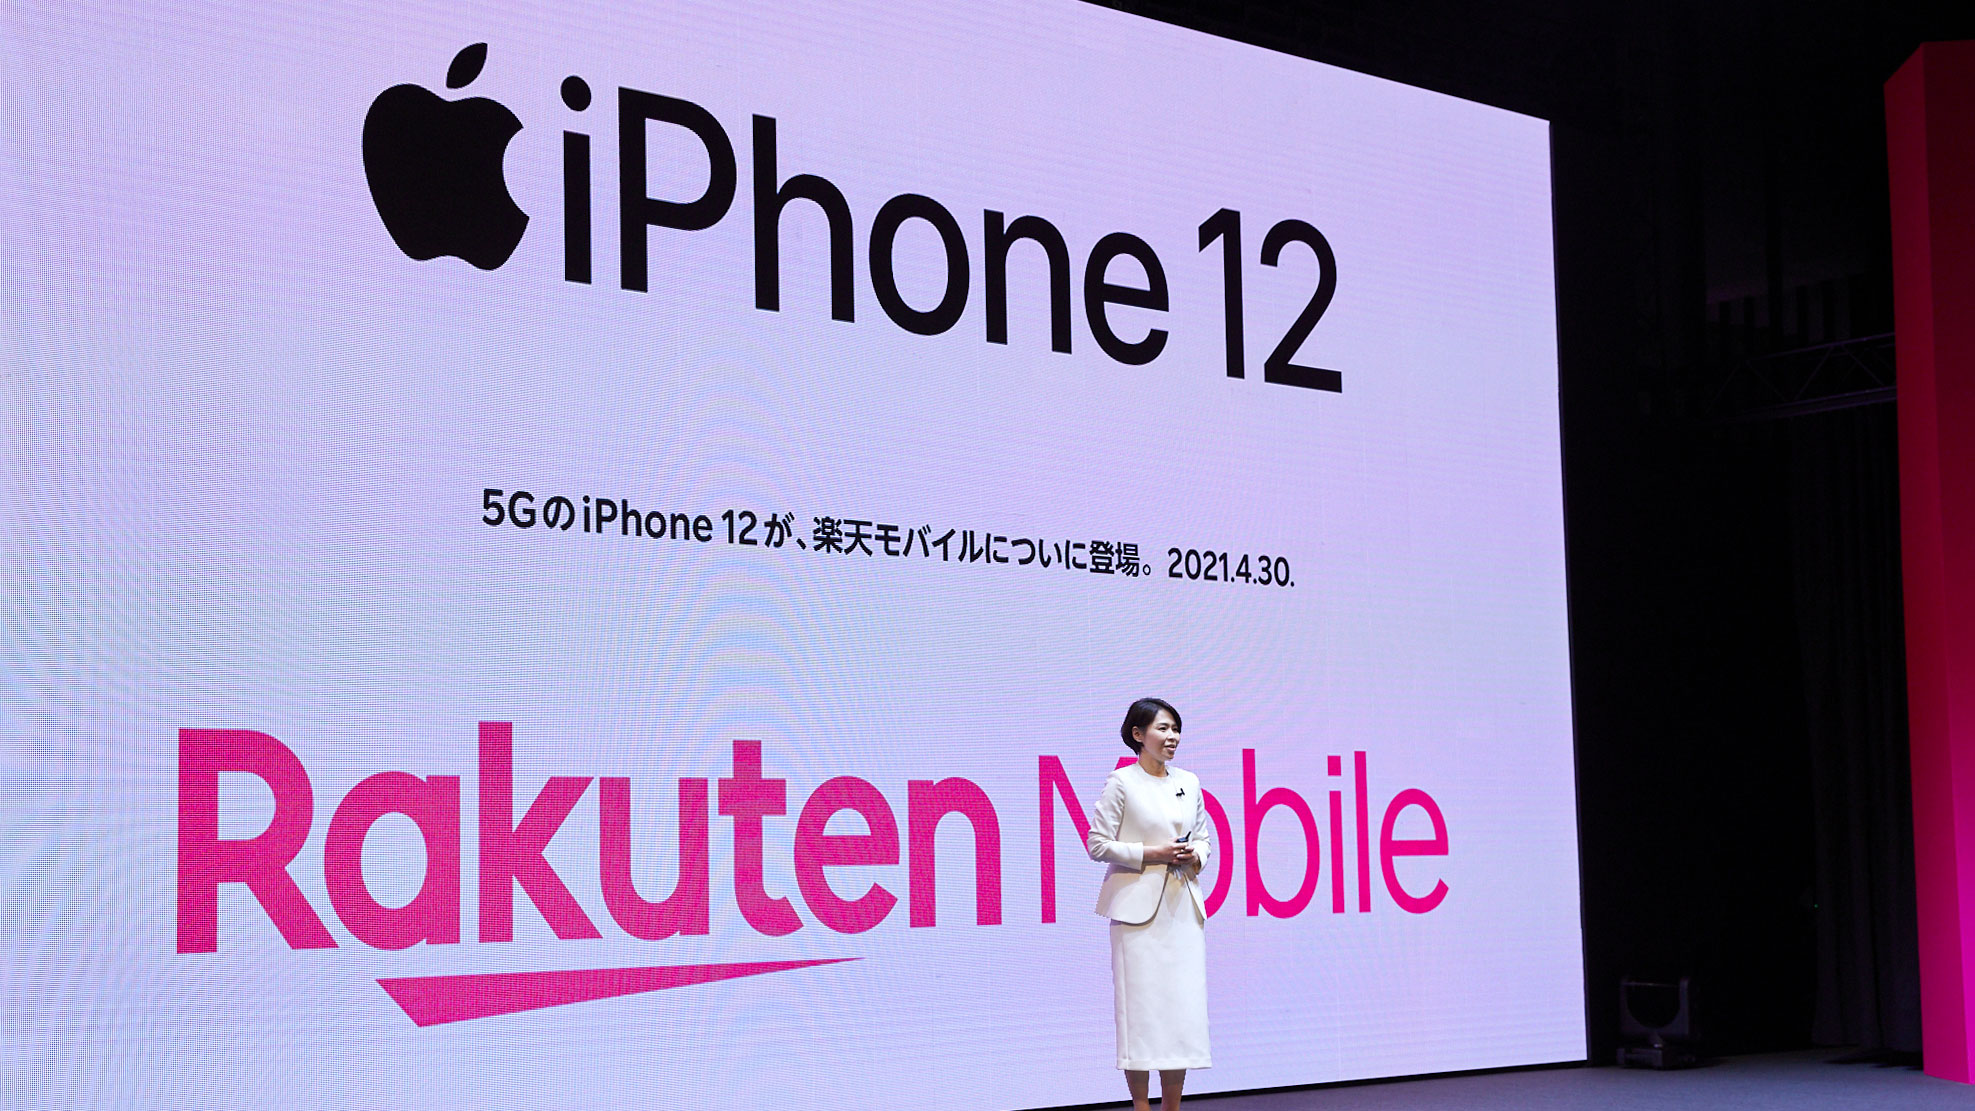 Rakuten Mobile Adds iPhone to its Device Lineup!